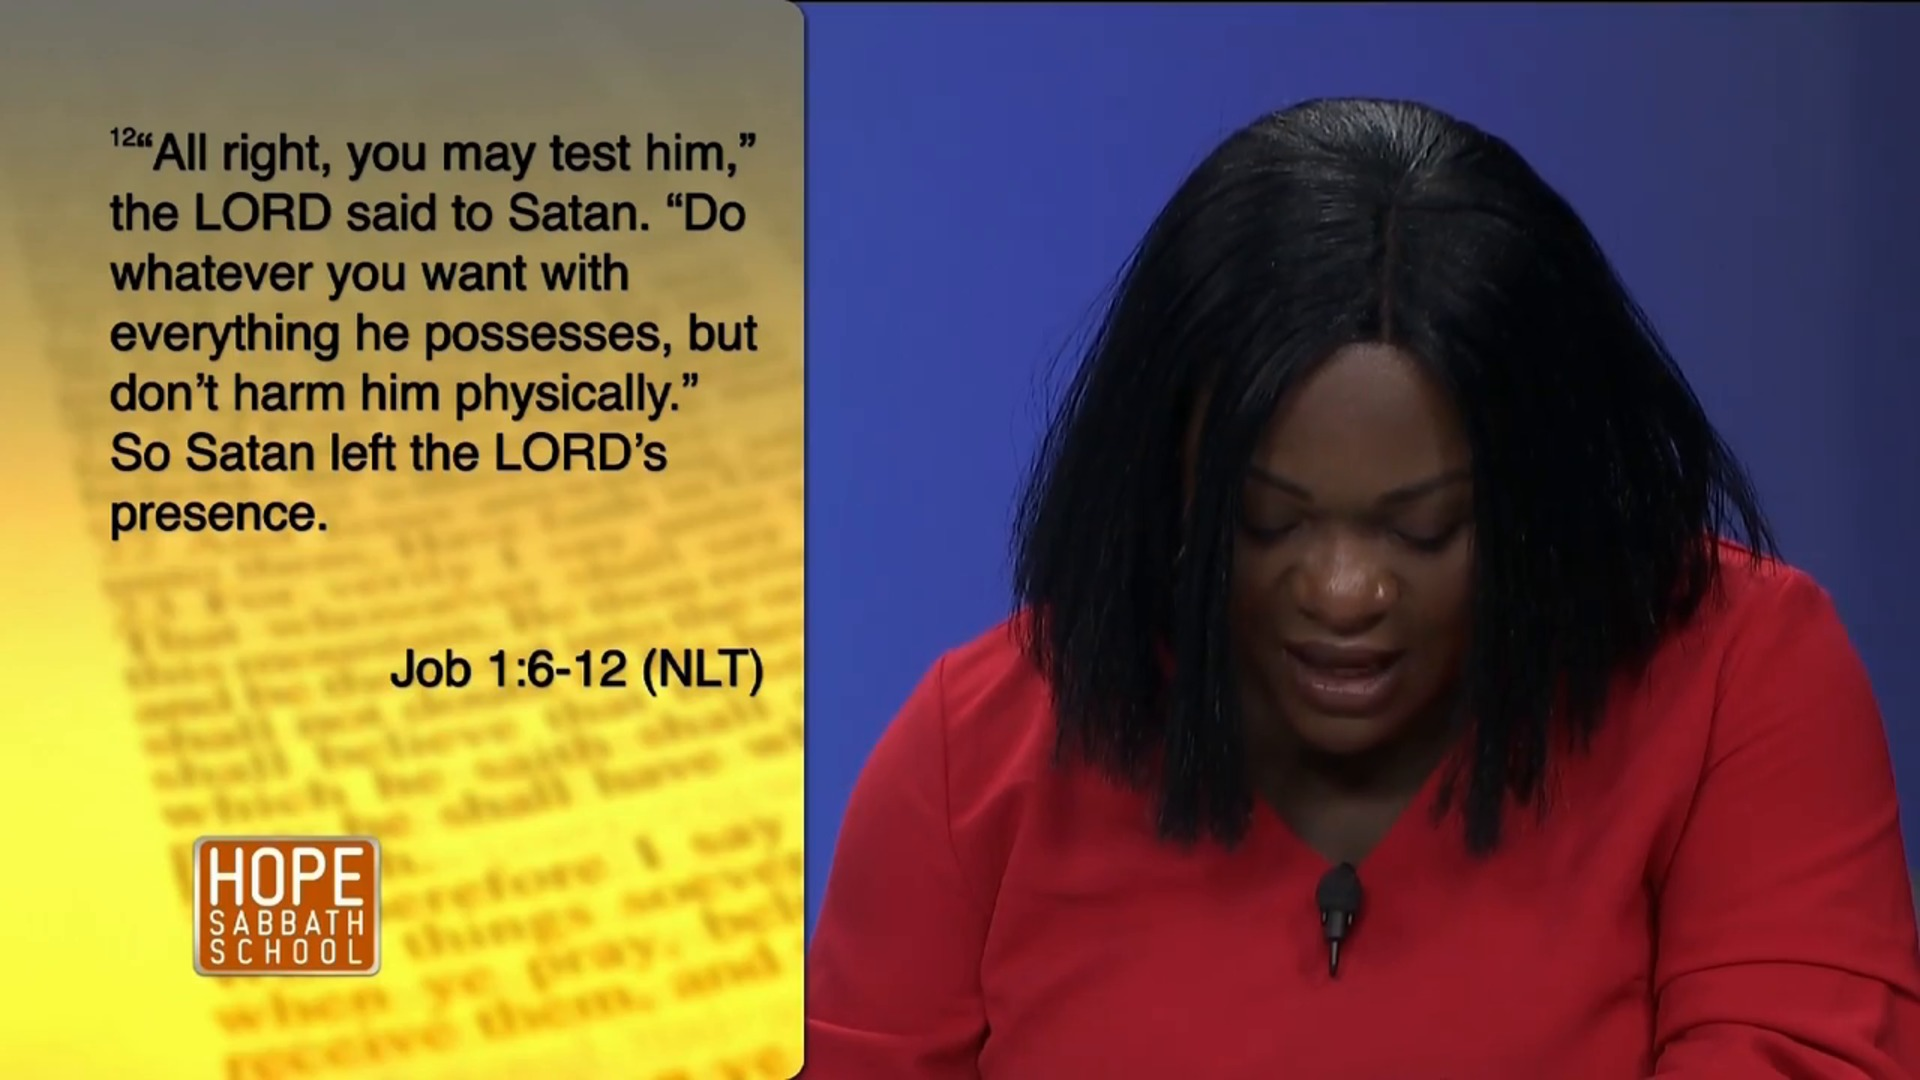 Lesson 8 - Satan, A Defeated Enemy (1st Qtr. 2019)